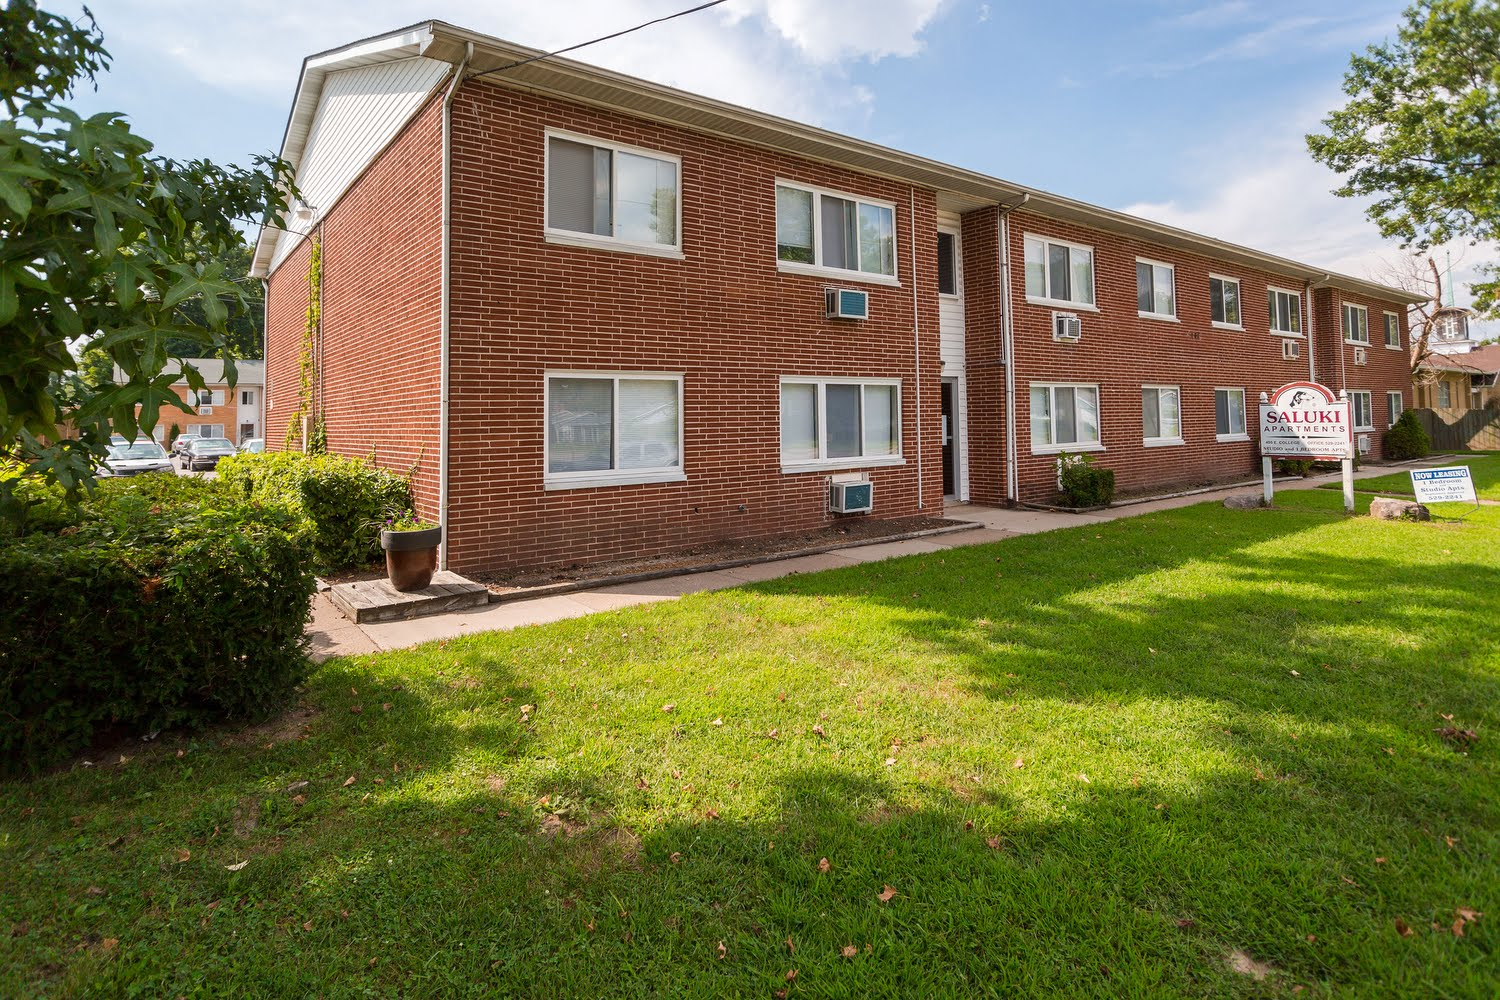 Saluki apartments for rent in carbondale illinois - One bedroom apartments in carbondale il ...